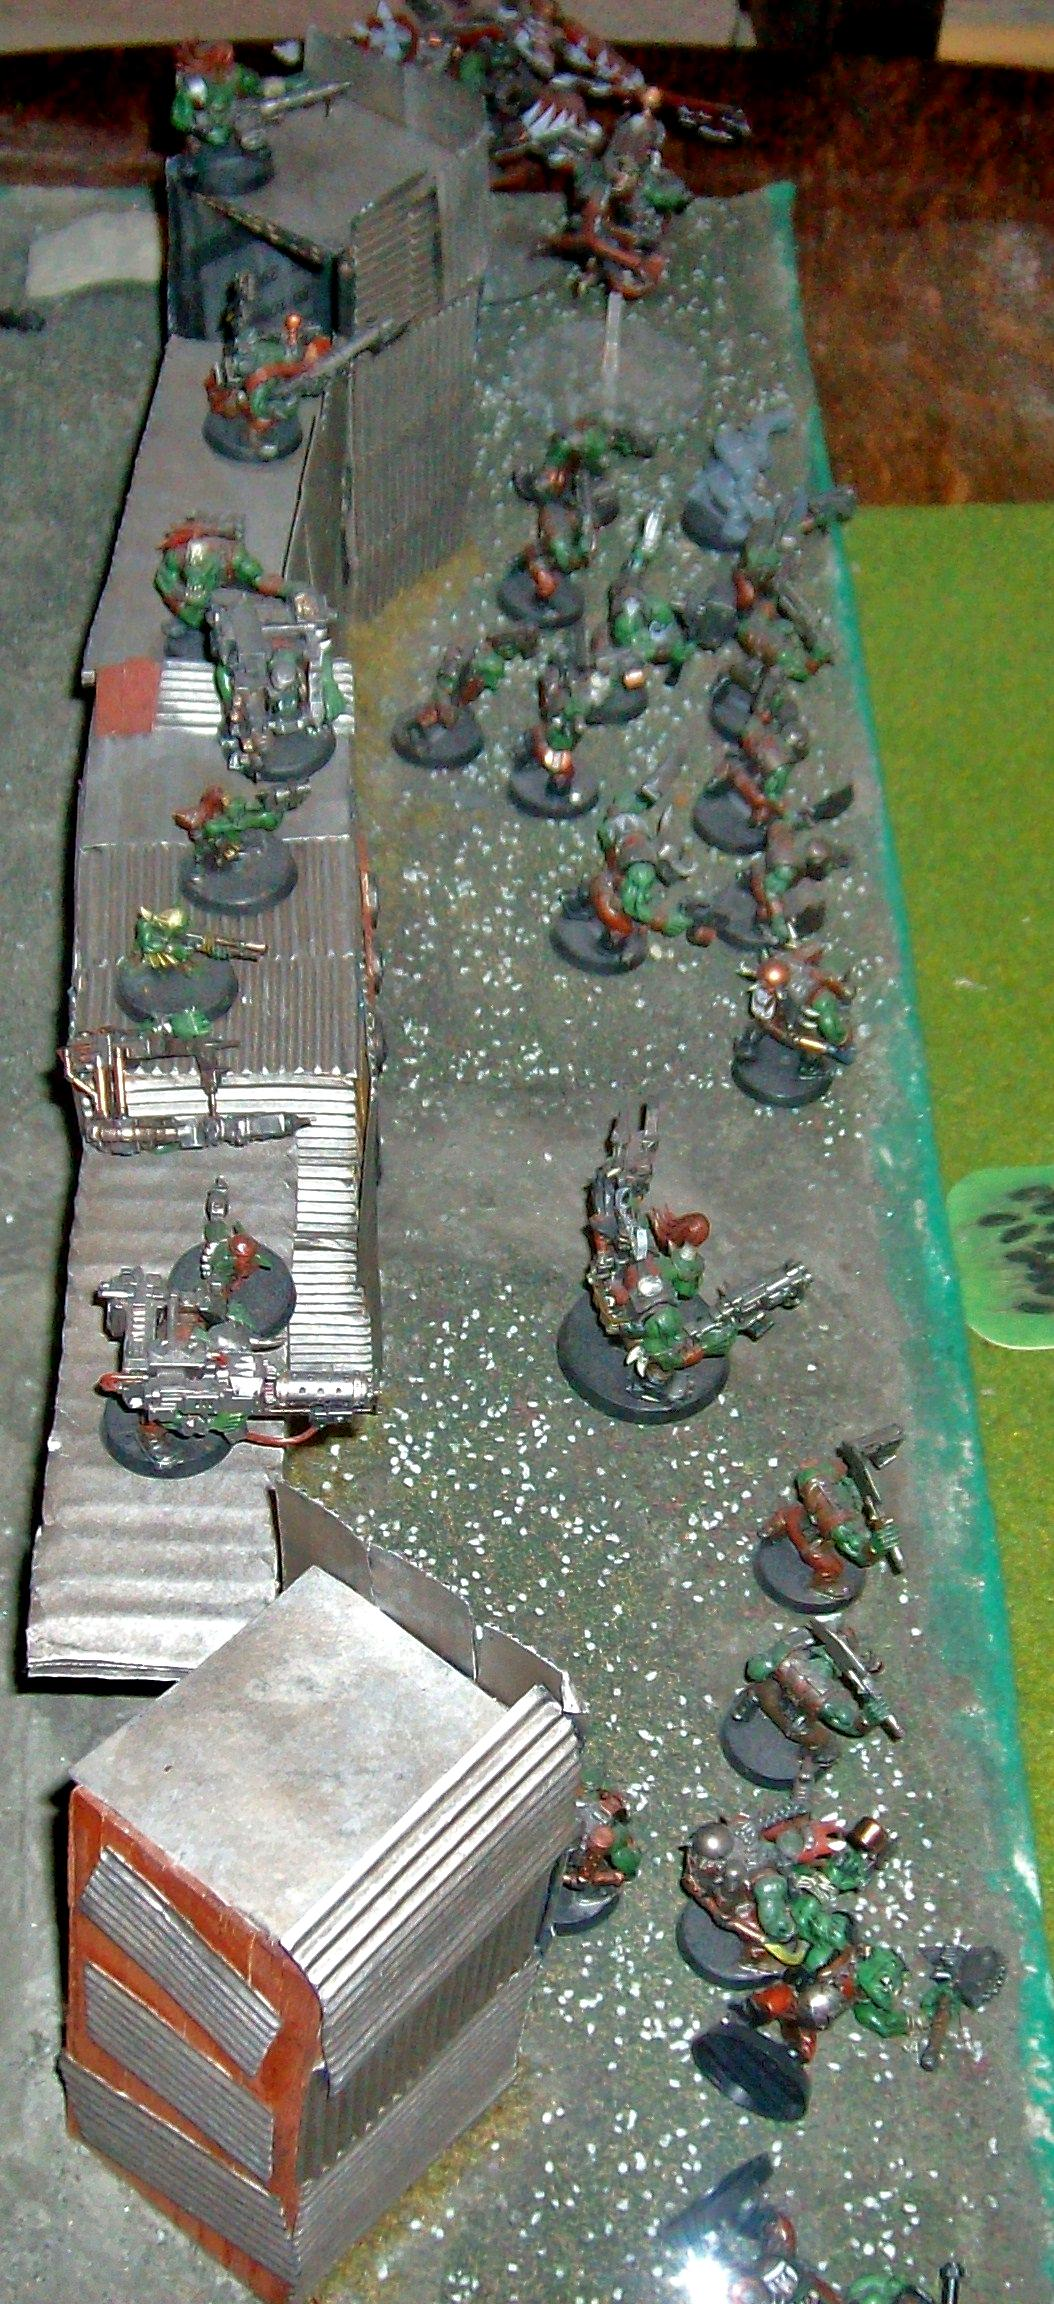 28mm Figures, Acrylic Paints, Homemade Fort, Military Minitures, Ork Fort, Orks, Wargame Minitures, Warhammer Figures